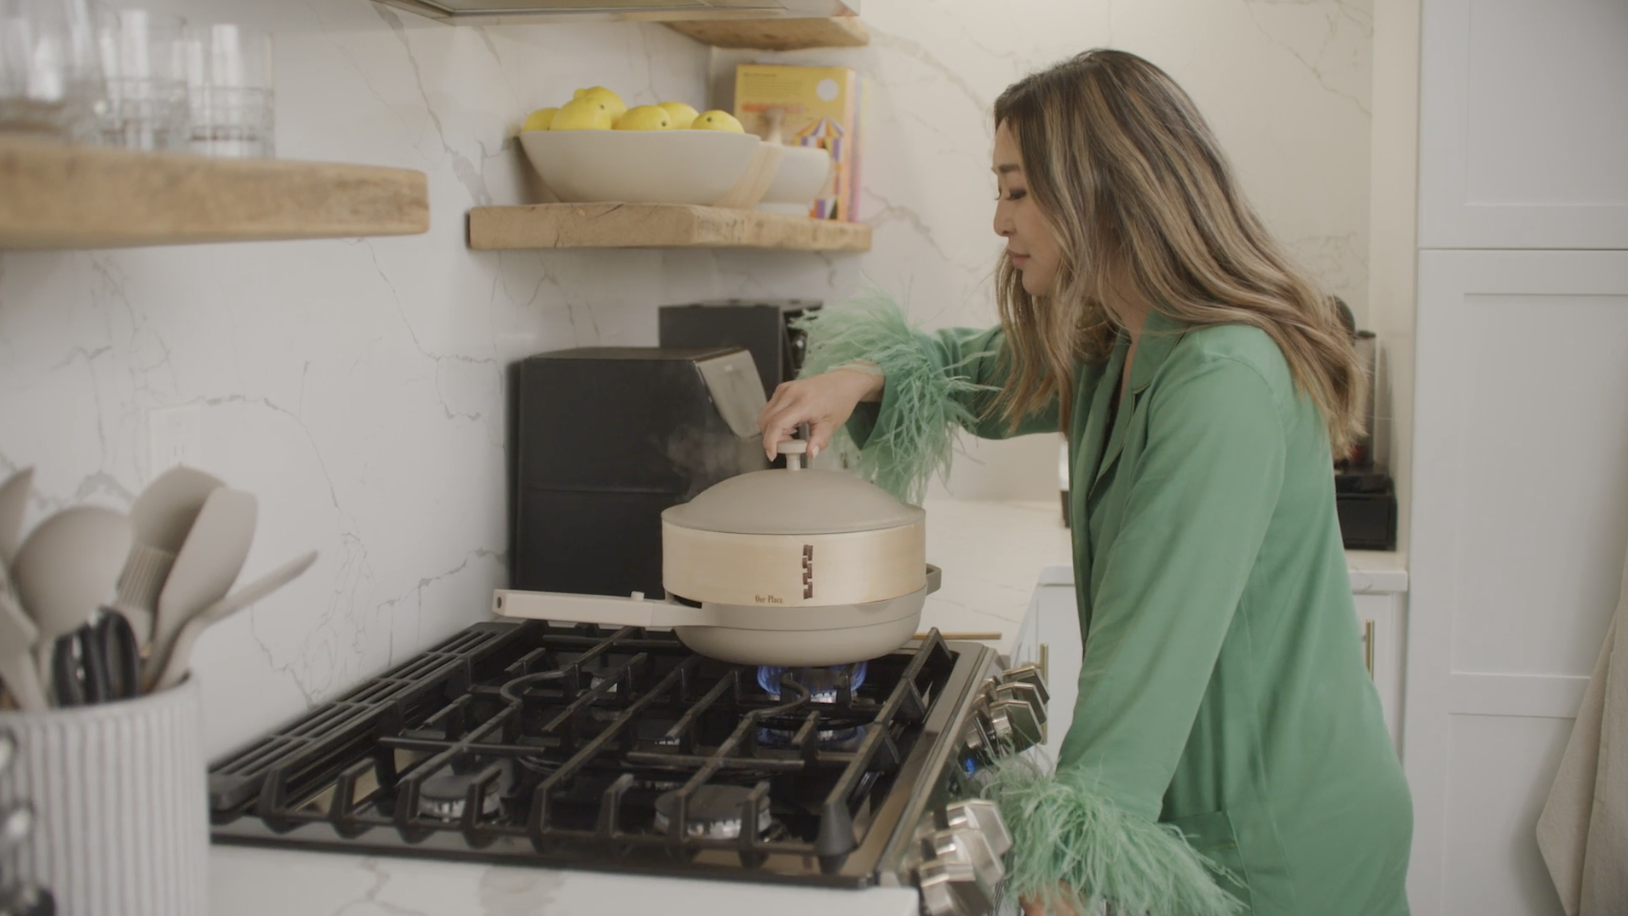 A woman wearing green pajamas leaning over a stovetop, lifting the lid of a pan.